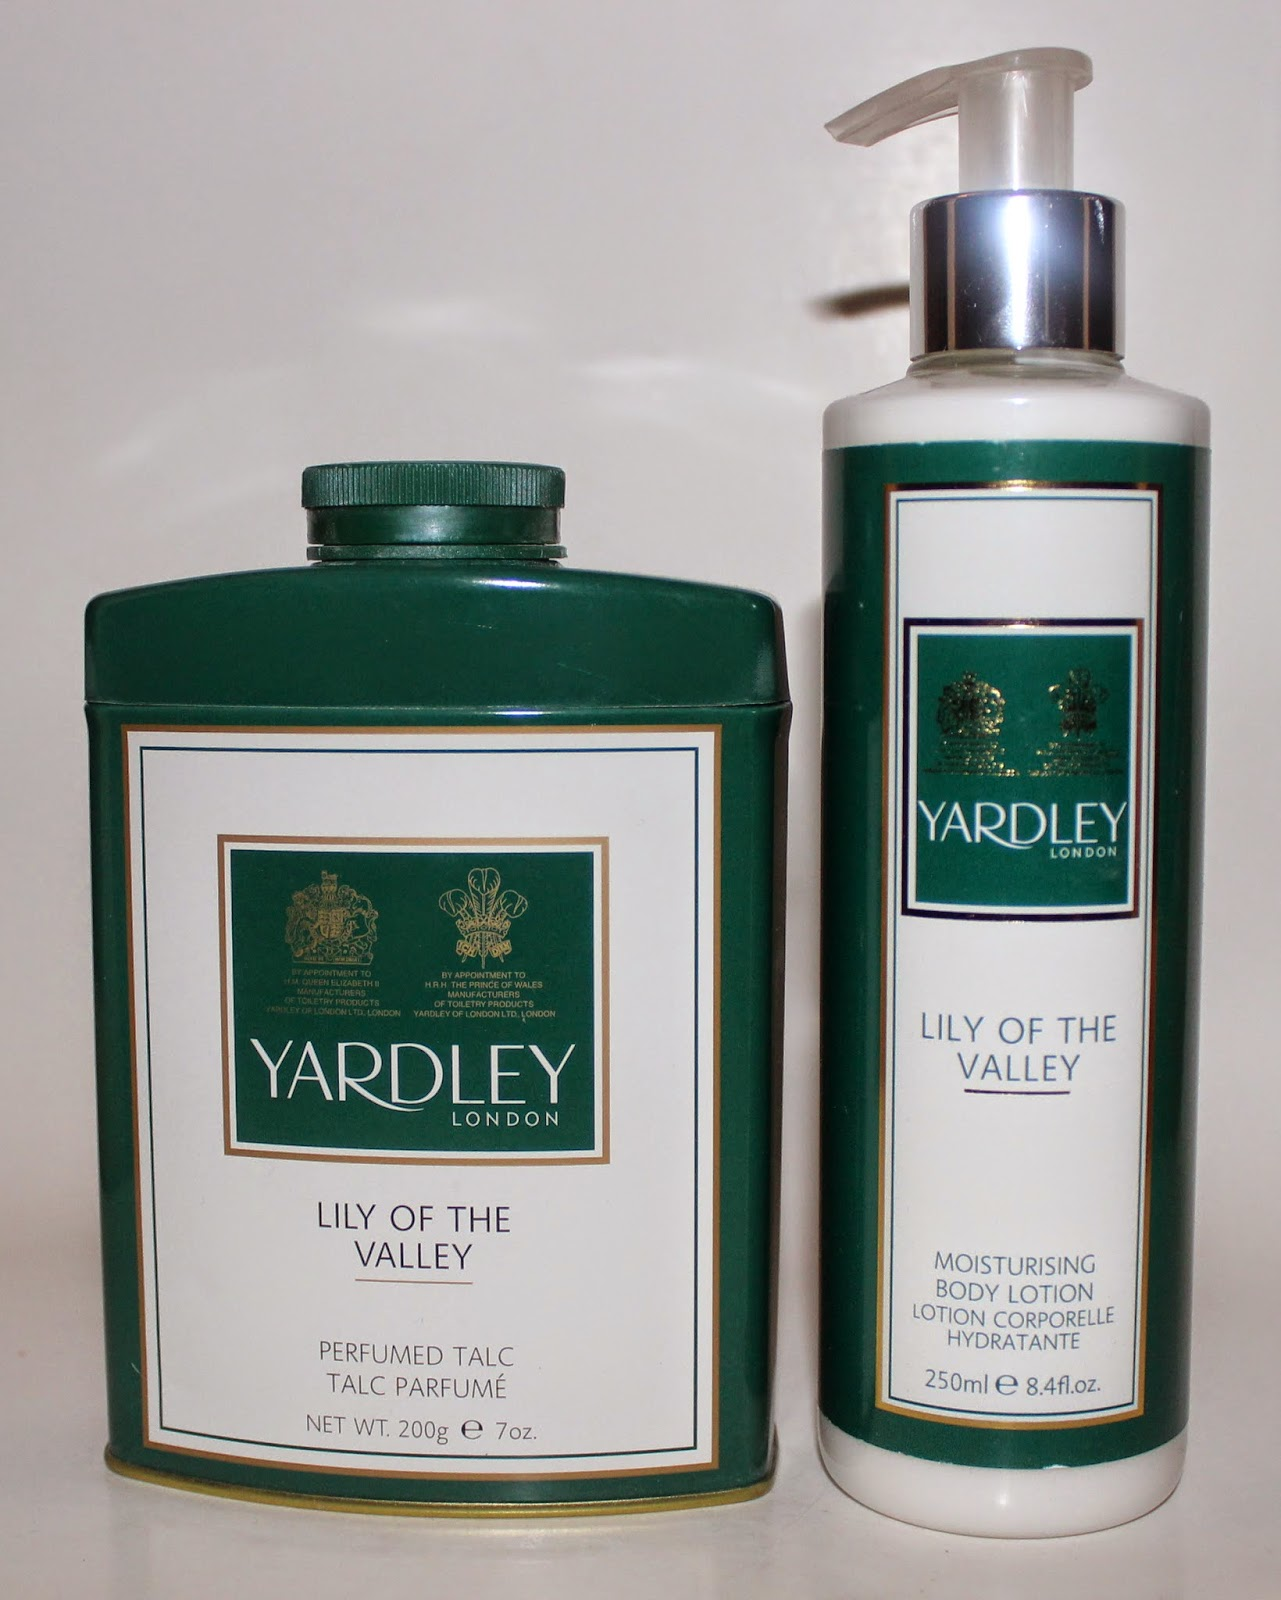 Yardley Lily of the Valley Moisturizing Body Lotion & Perfumed Talc